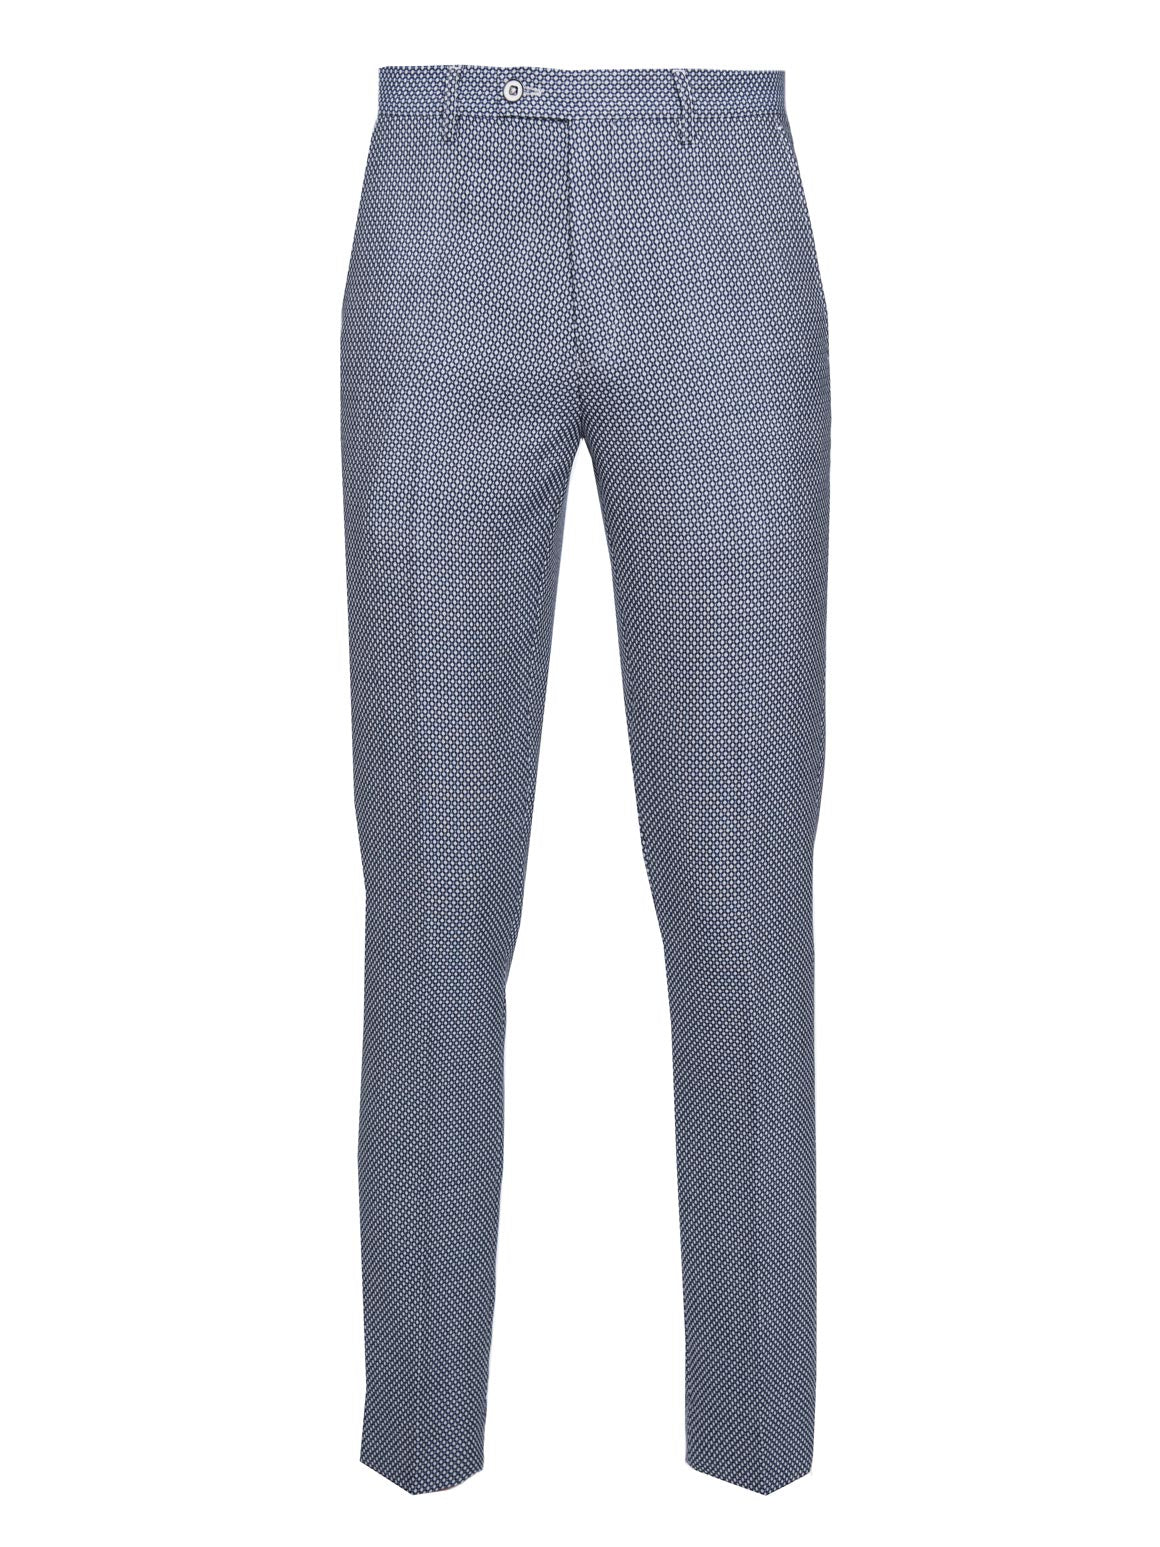 paisley & gray white & blue dot skinny fit suit pant 2141P